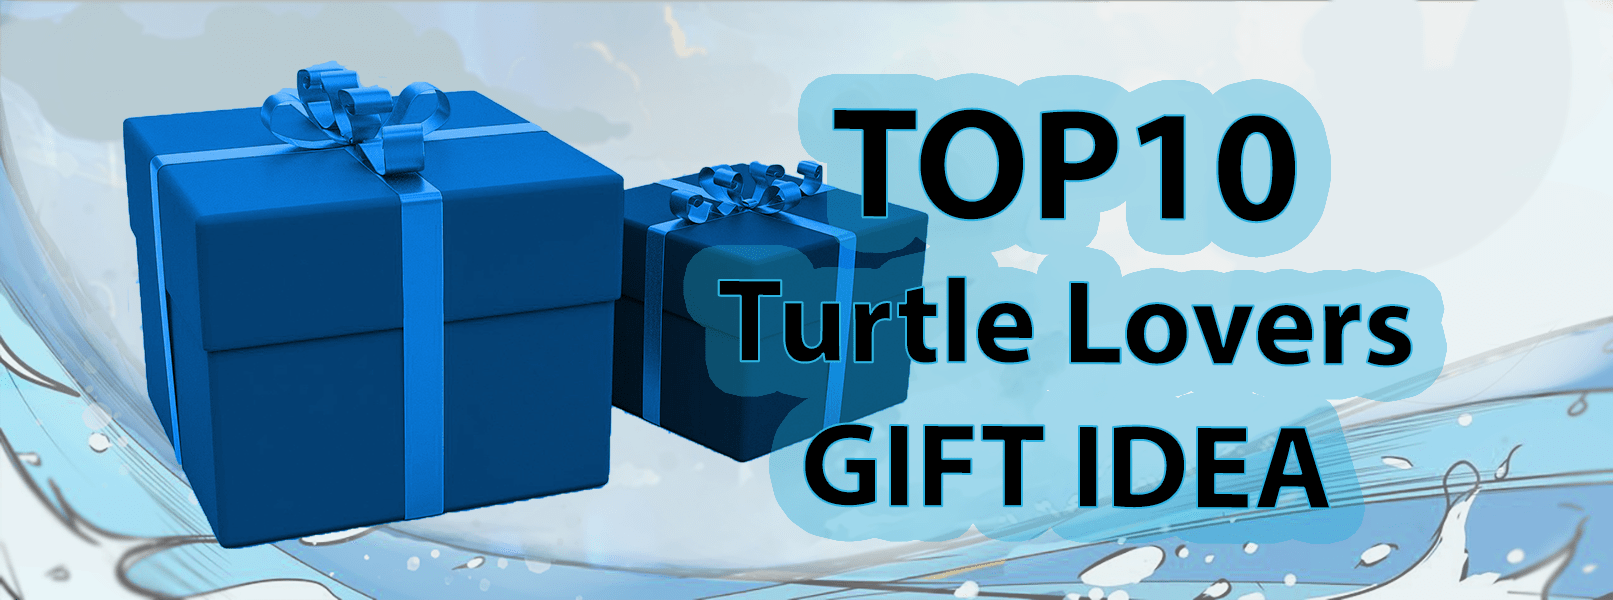 Turtle Lovers Gift Ideas